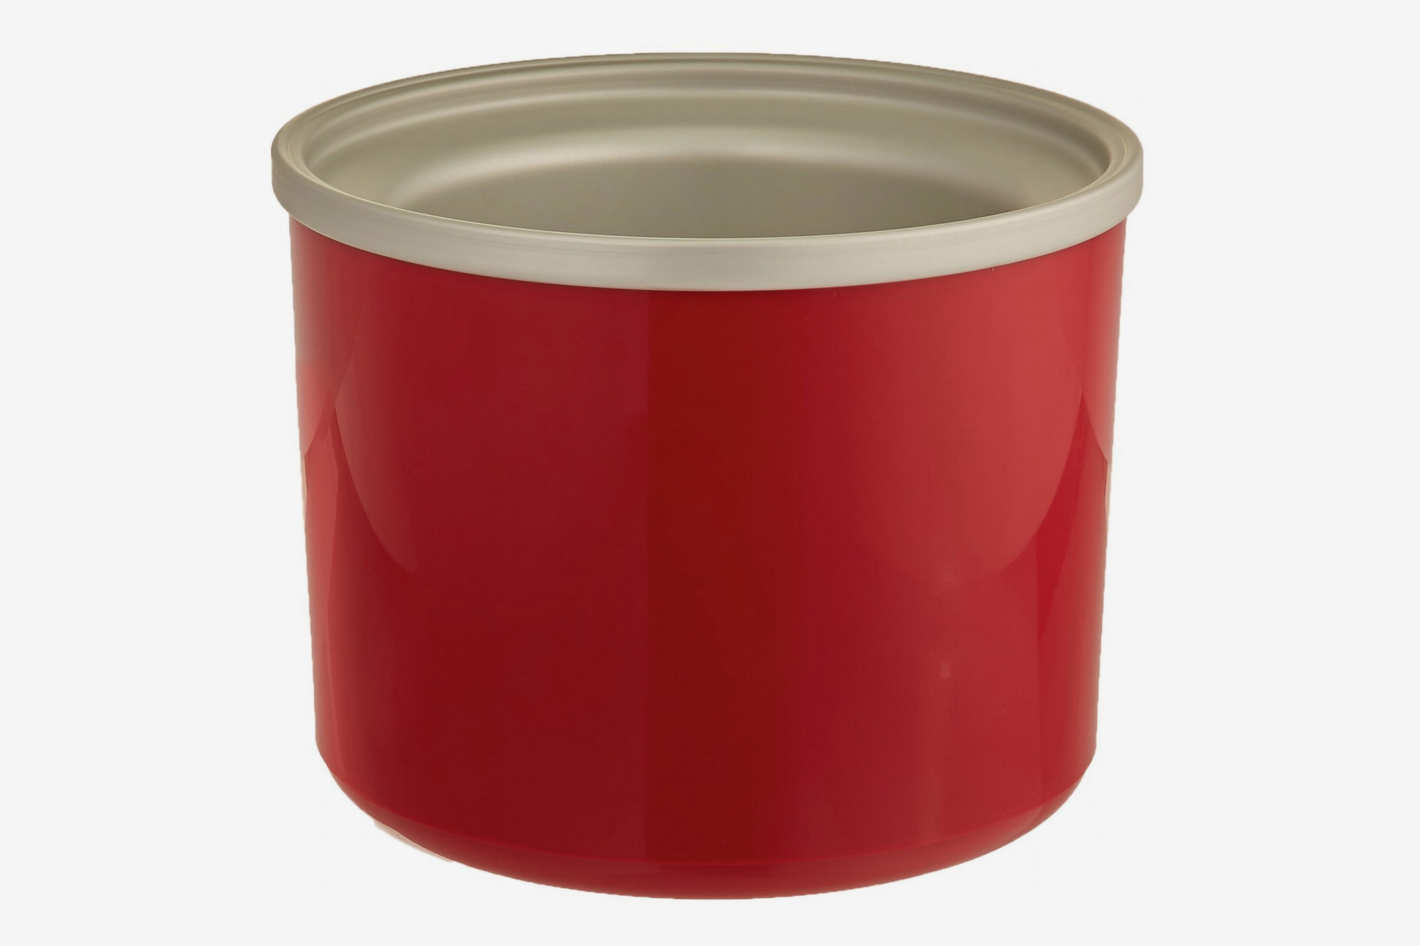 Cuisinart ICE-RFBR Replacement Freezer Bowl, Red